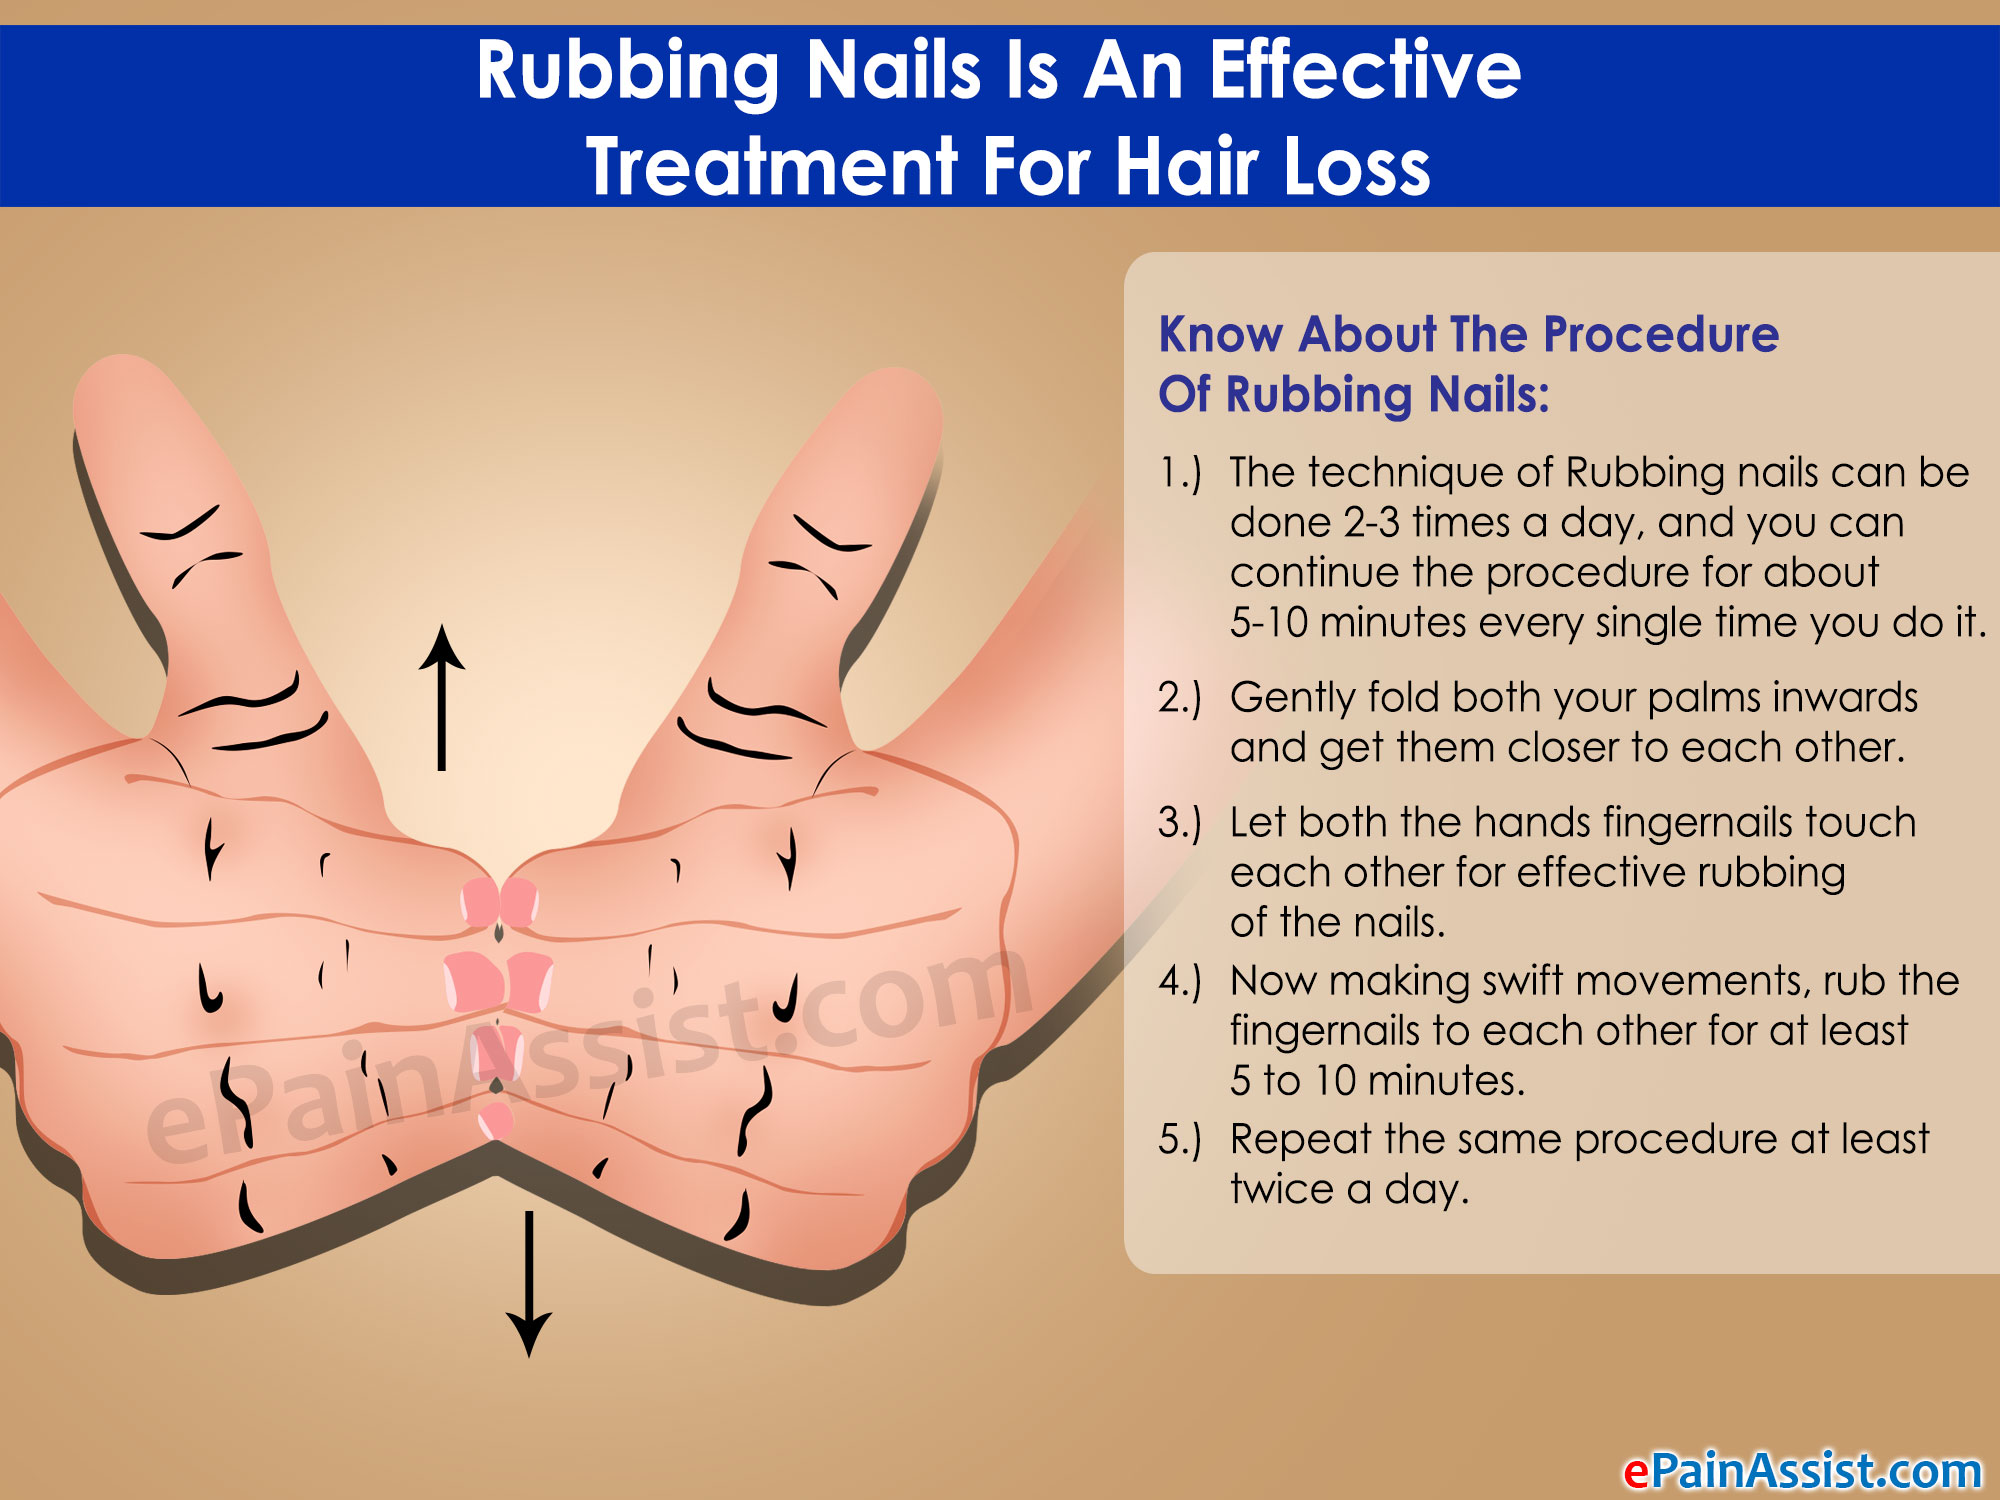 Rubbing Nails Is An Effective Treatment For Hair Loss